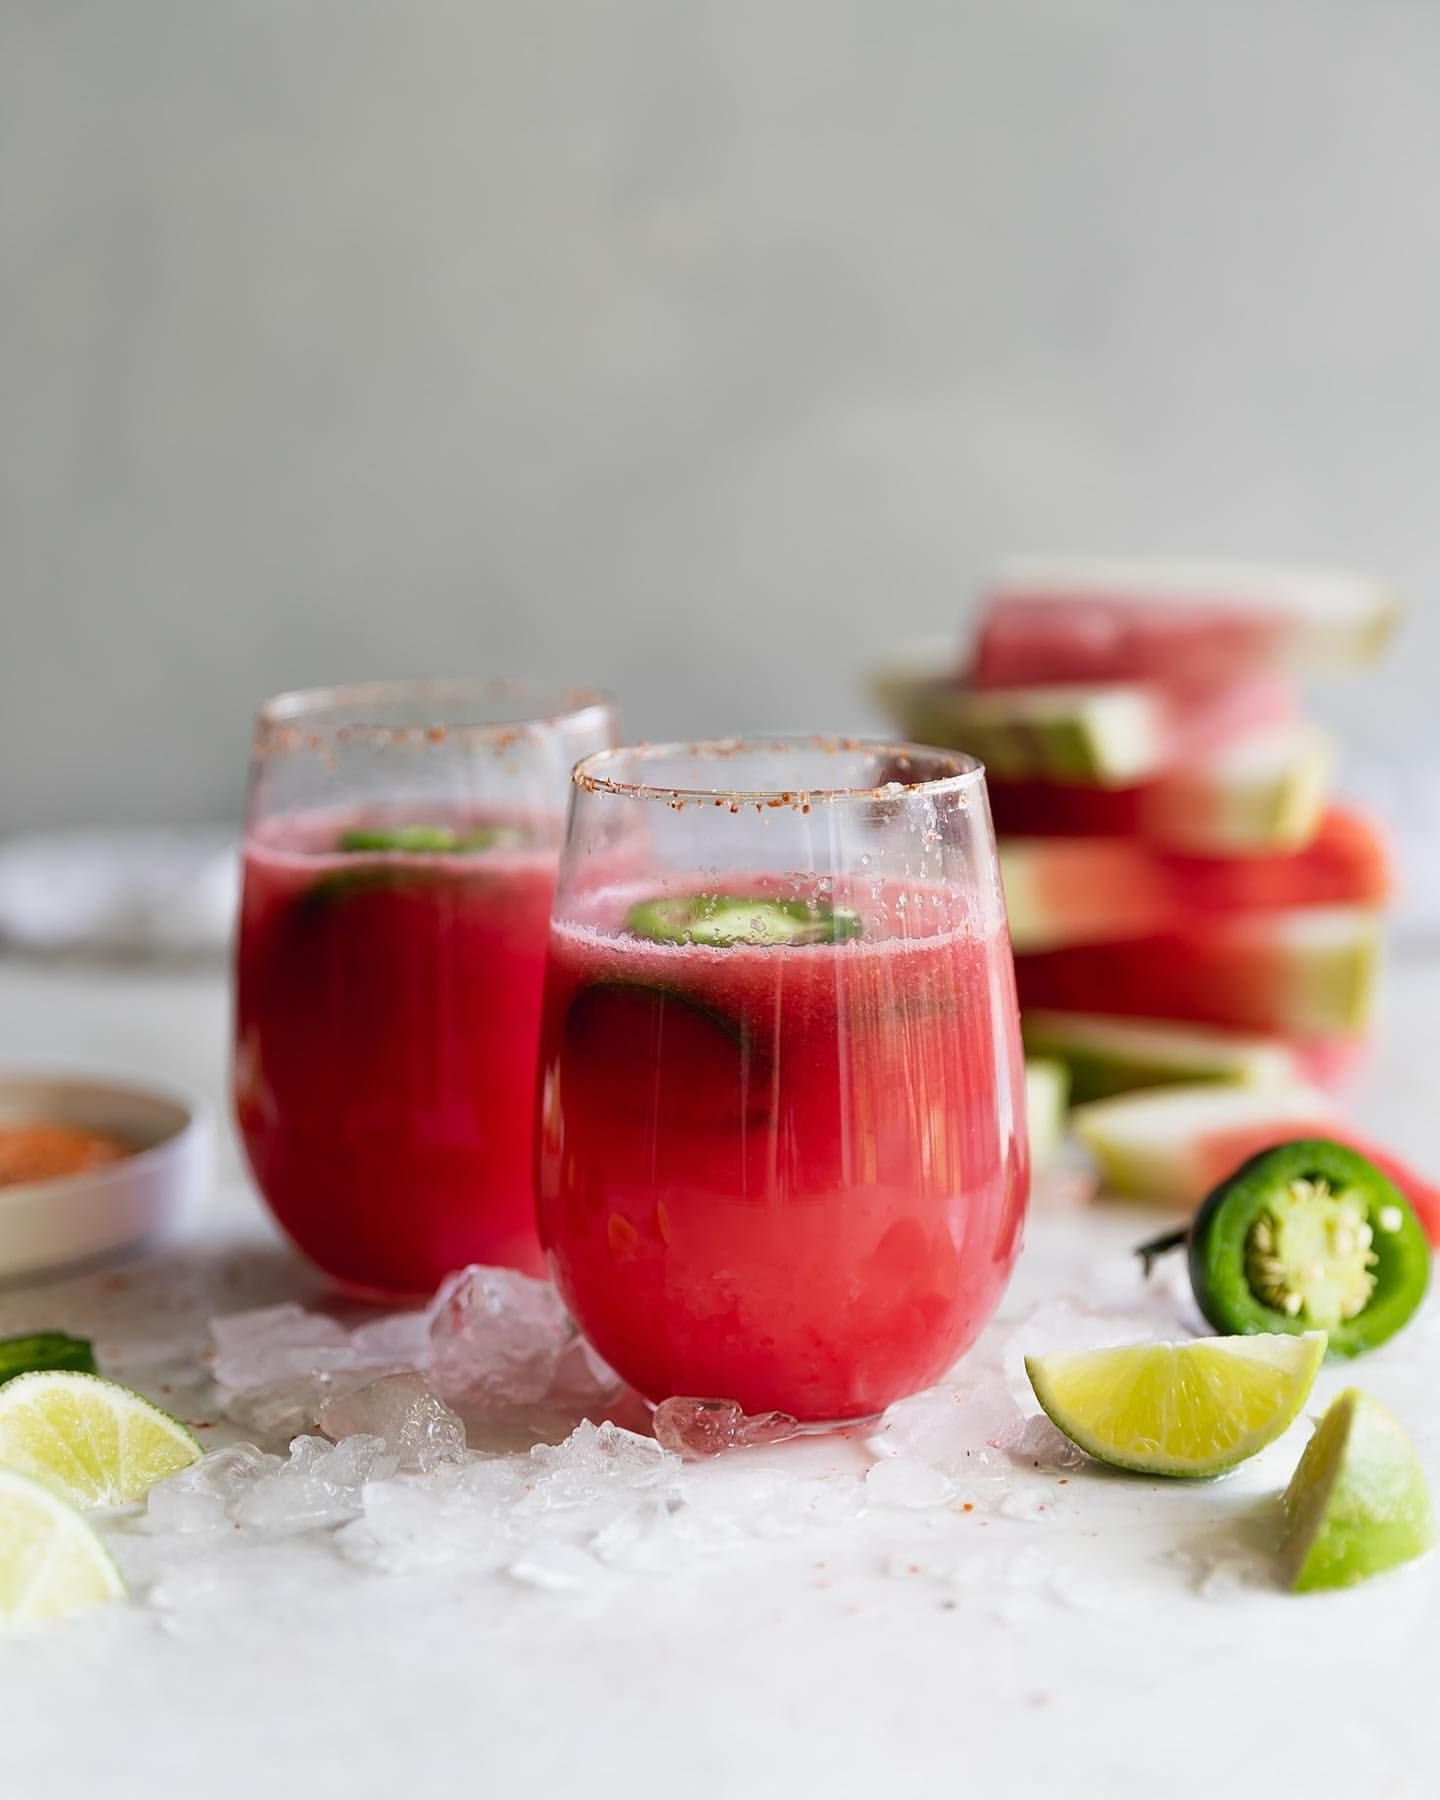 Spicy Watermelon Tequila Punch